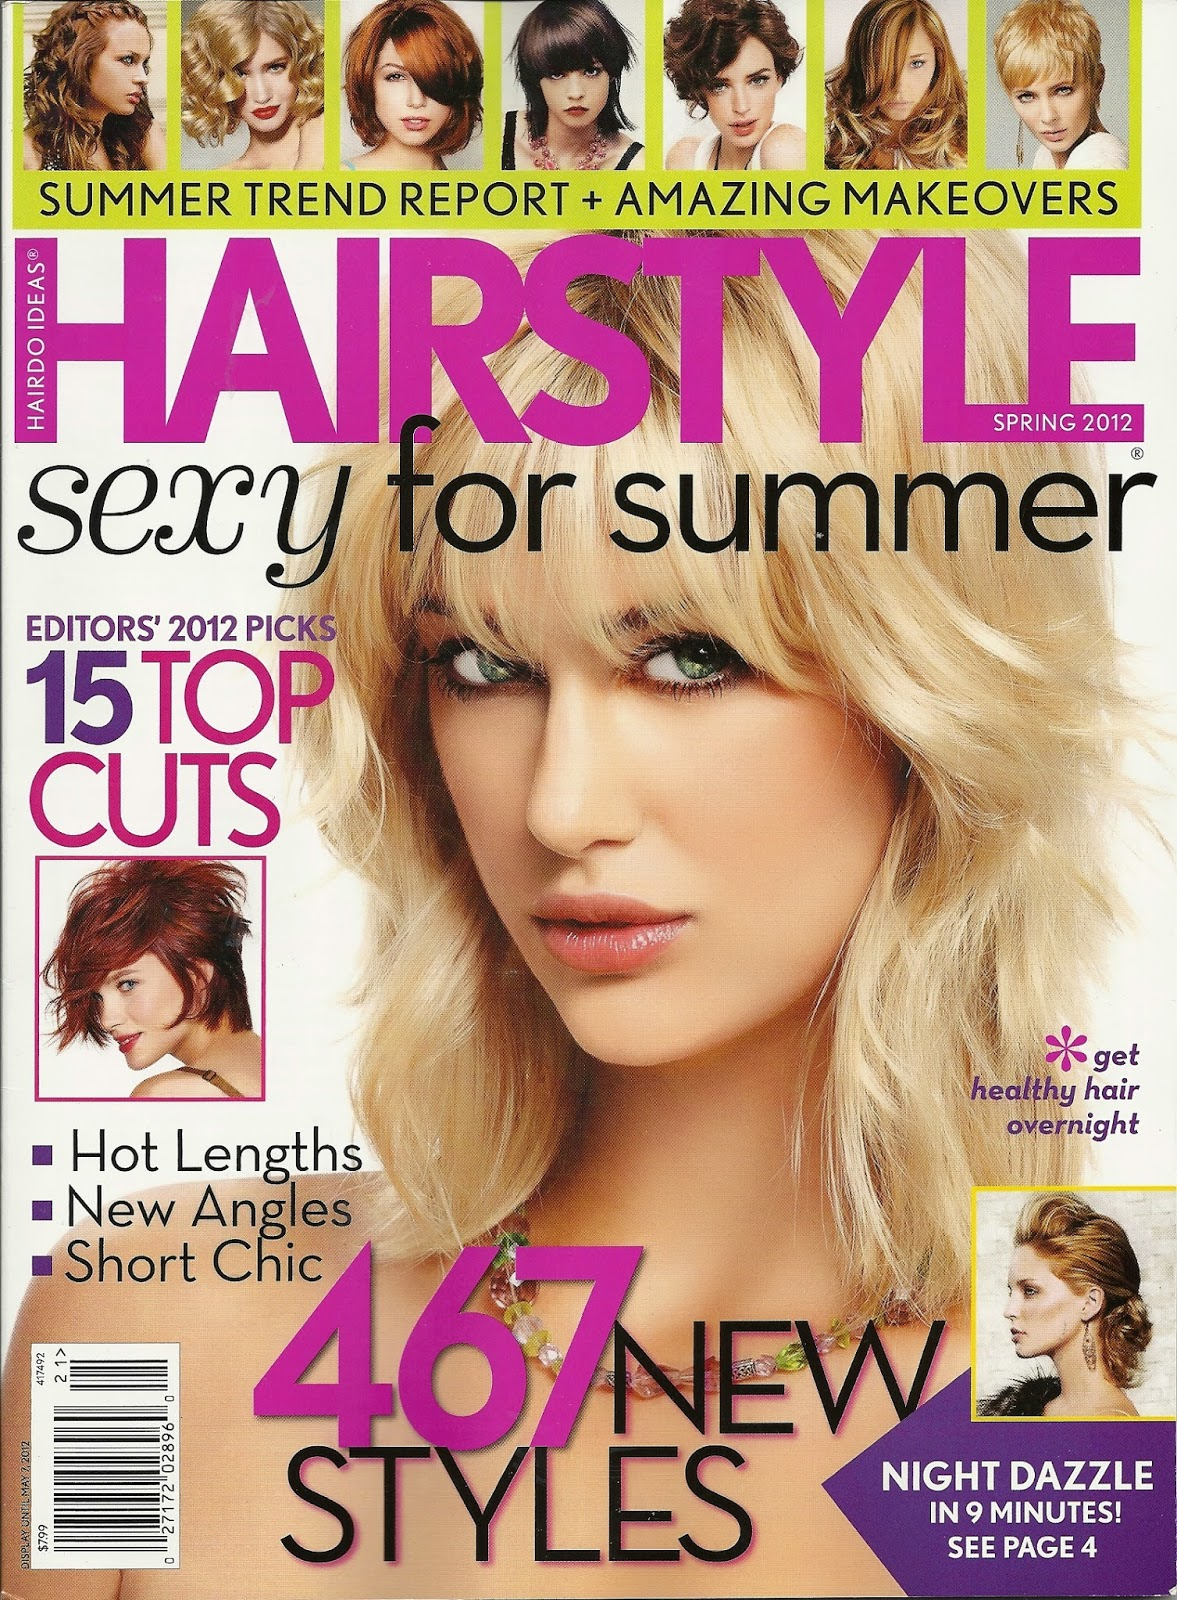 magazines uk,hairstyle magazines 2013,hairstyle magazines for short